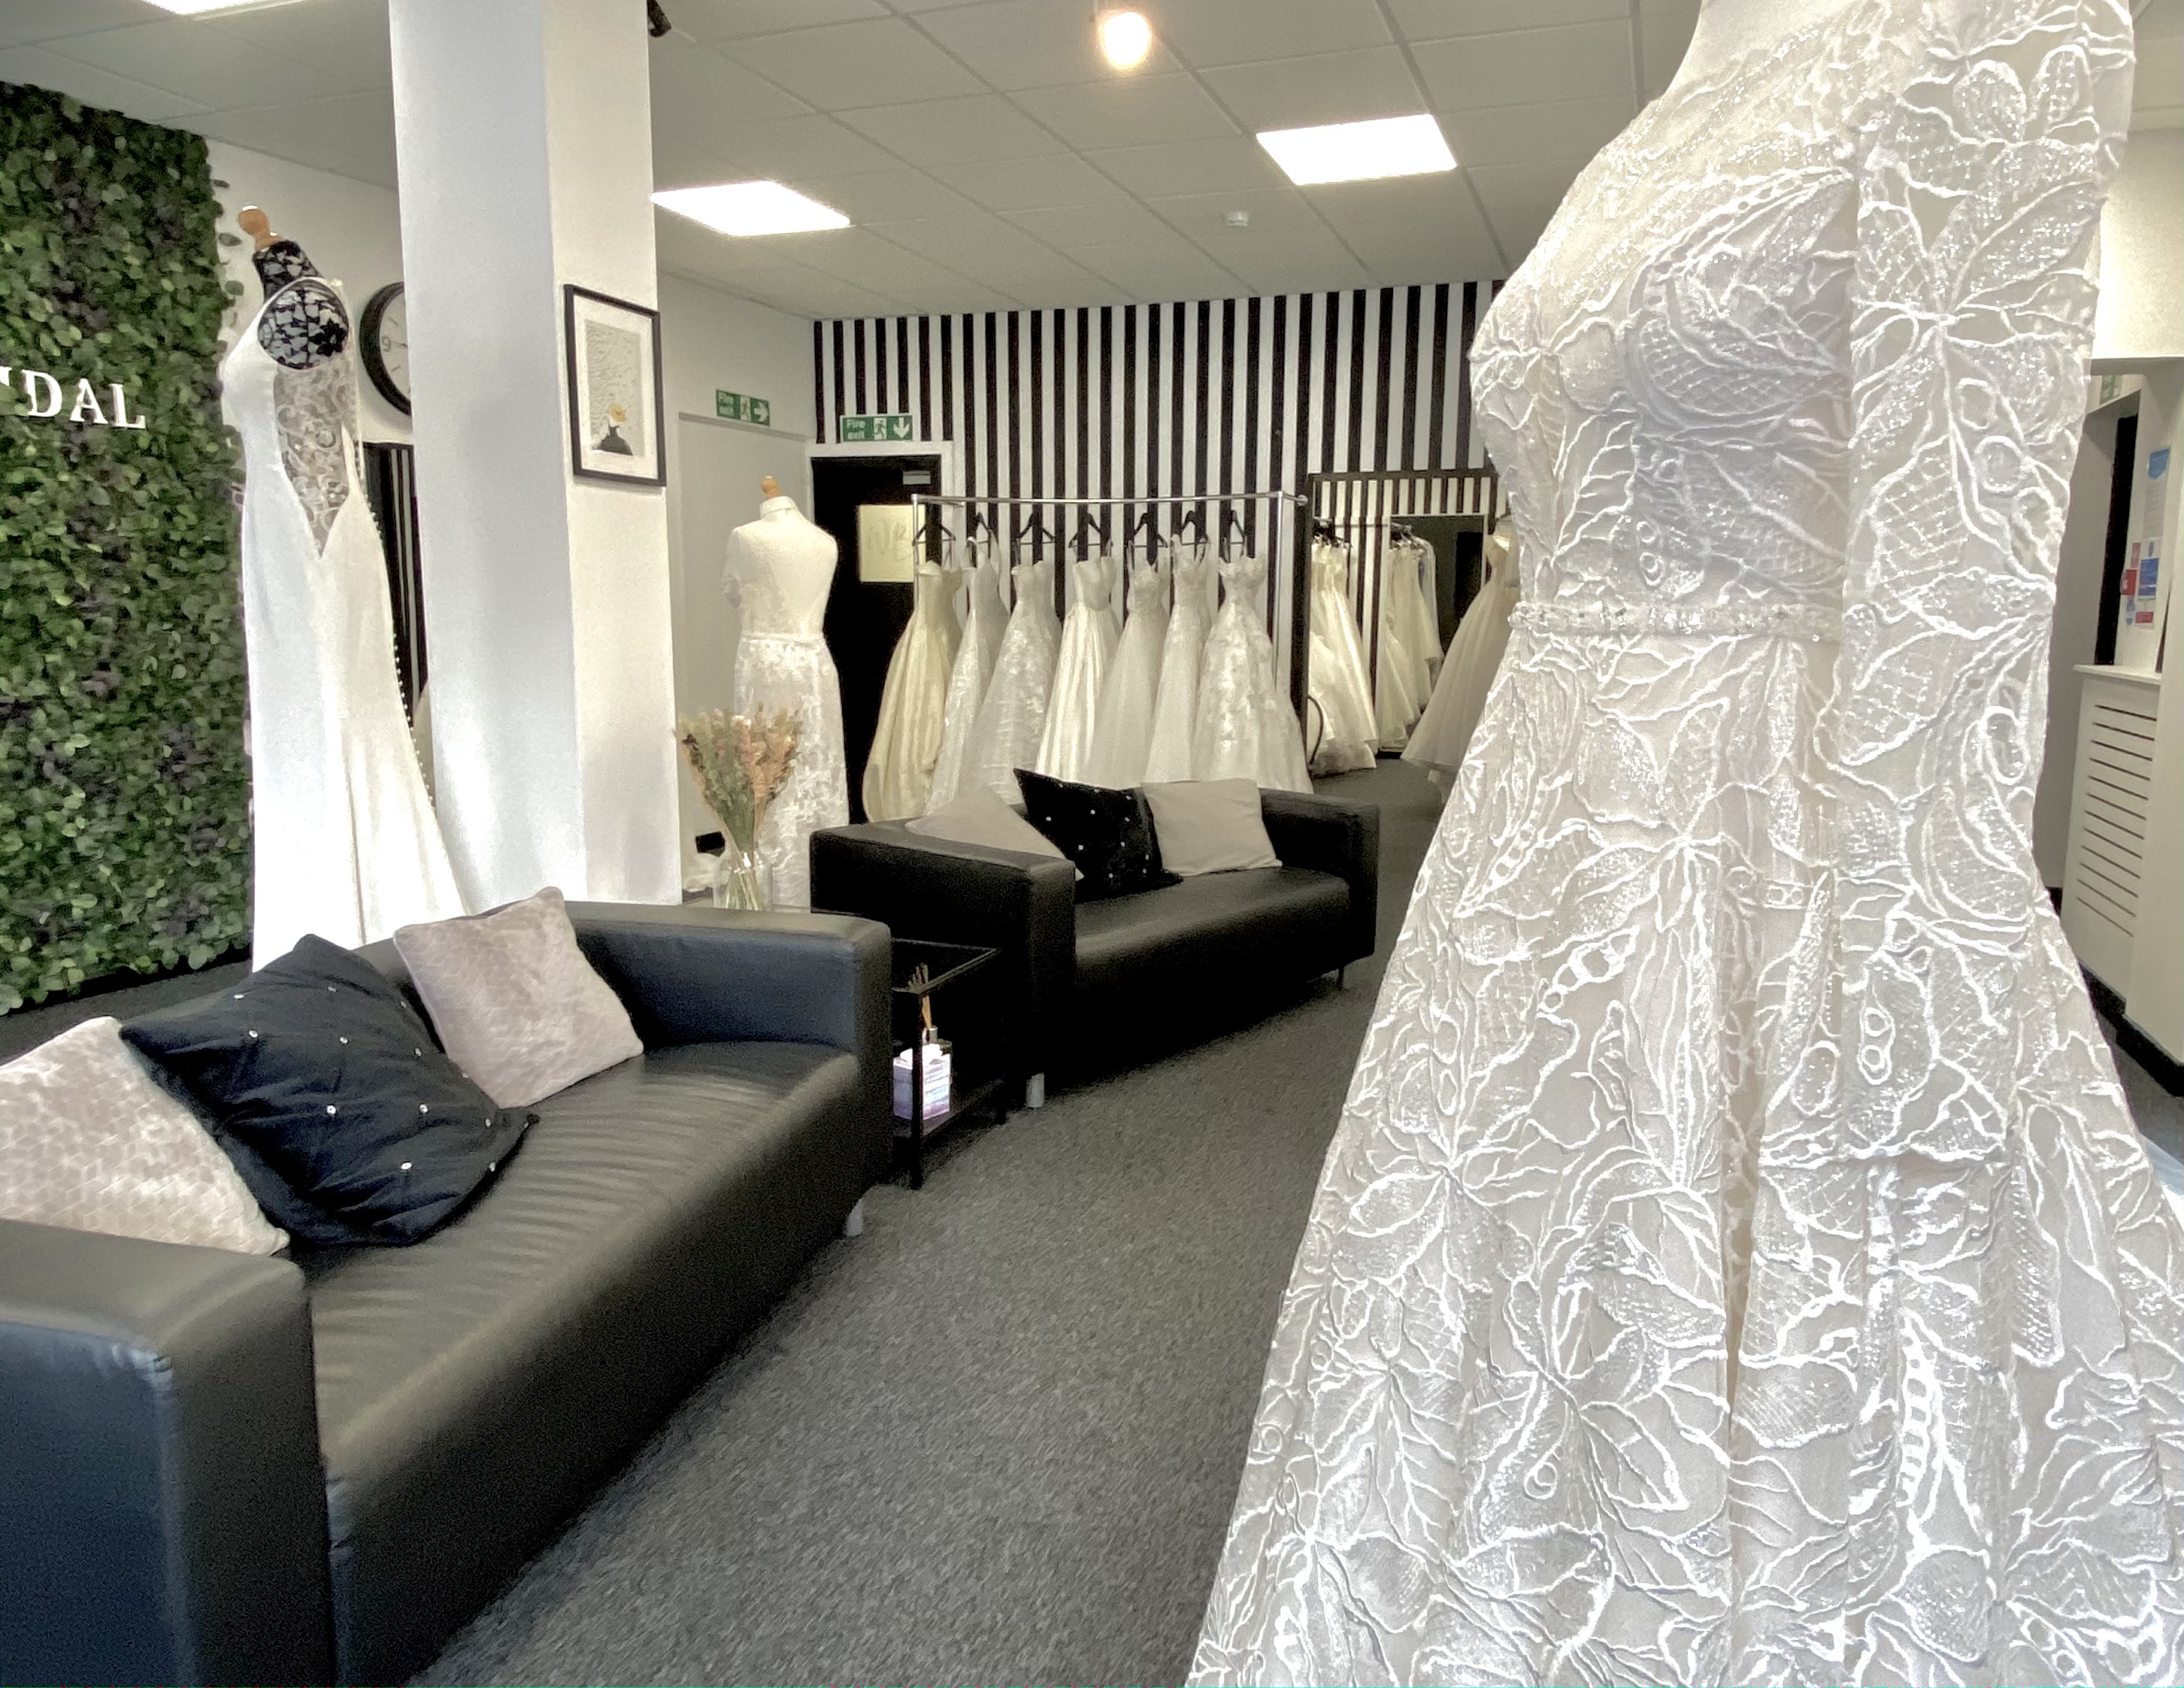 Willow Bridal Showroom   Willow Bridal